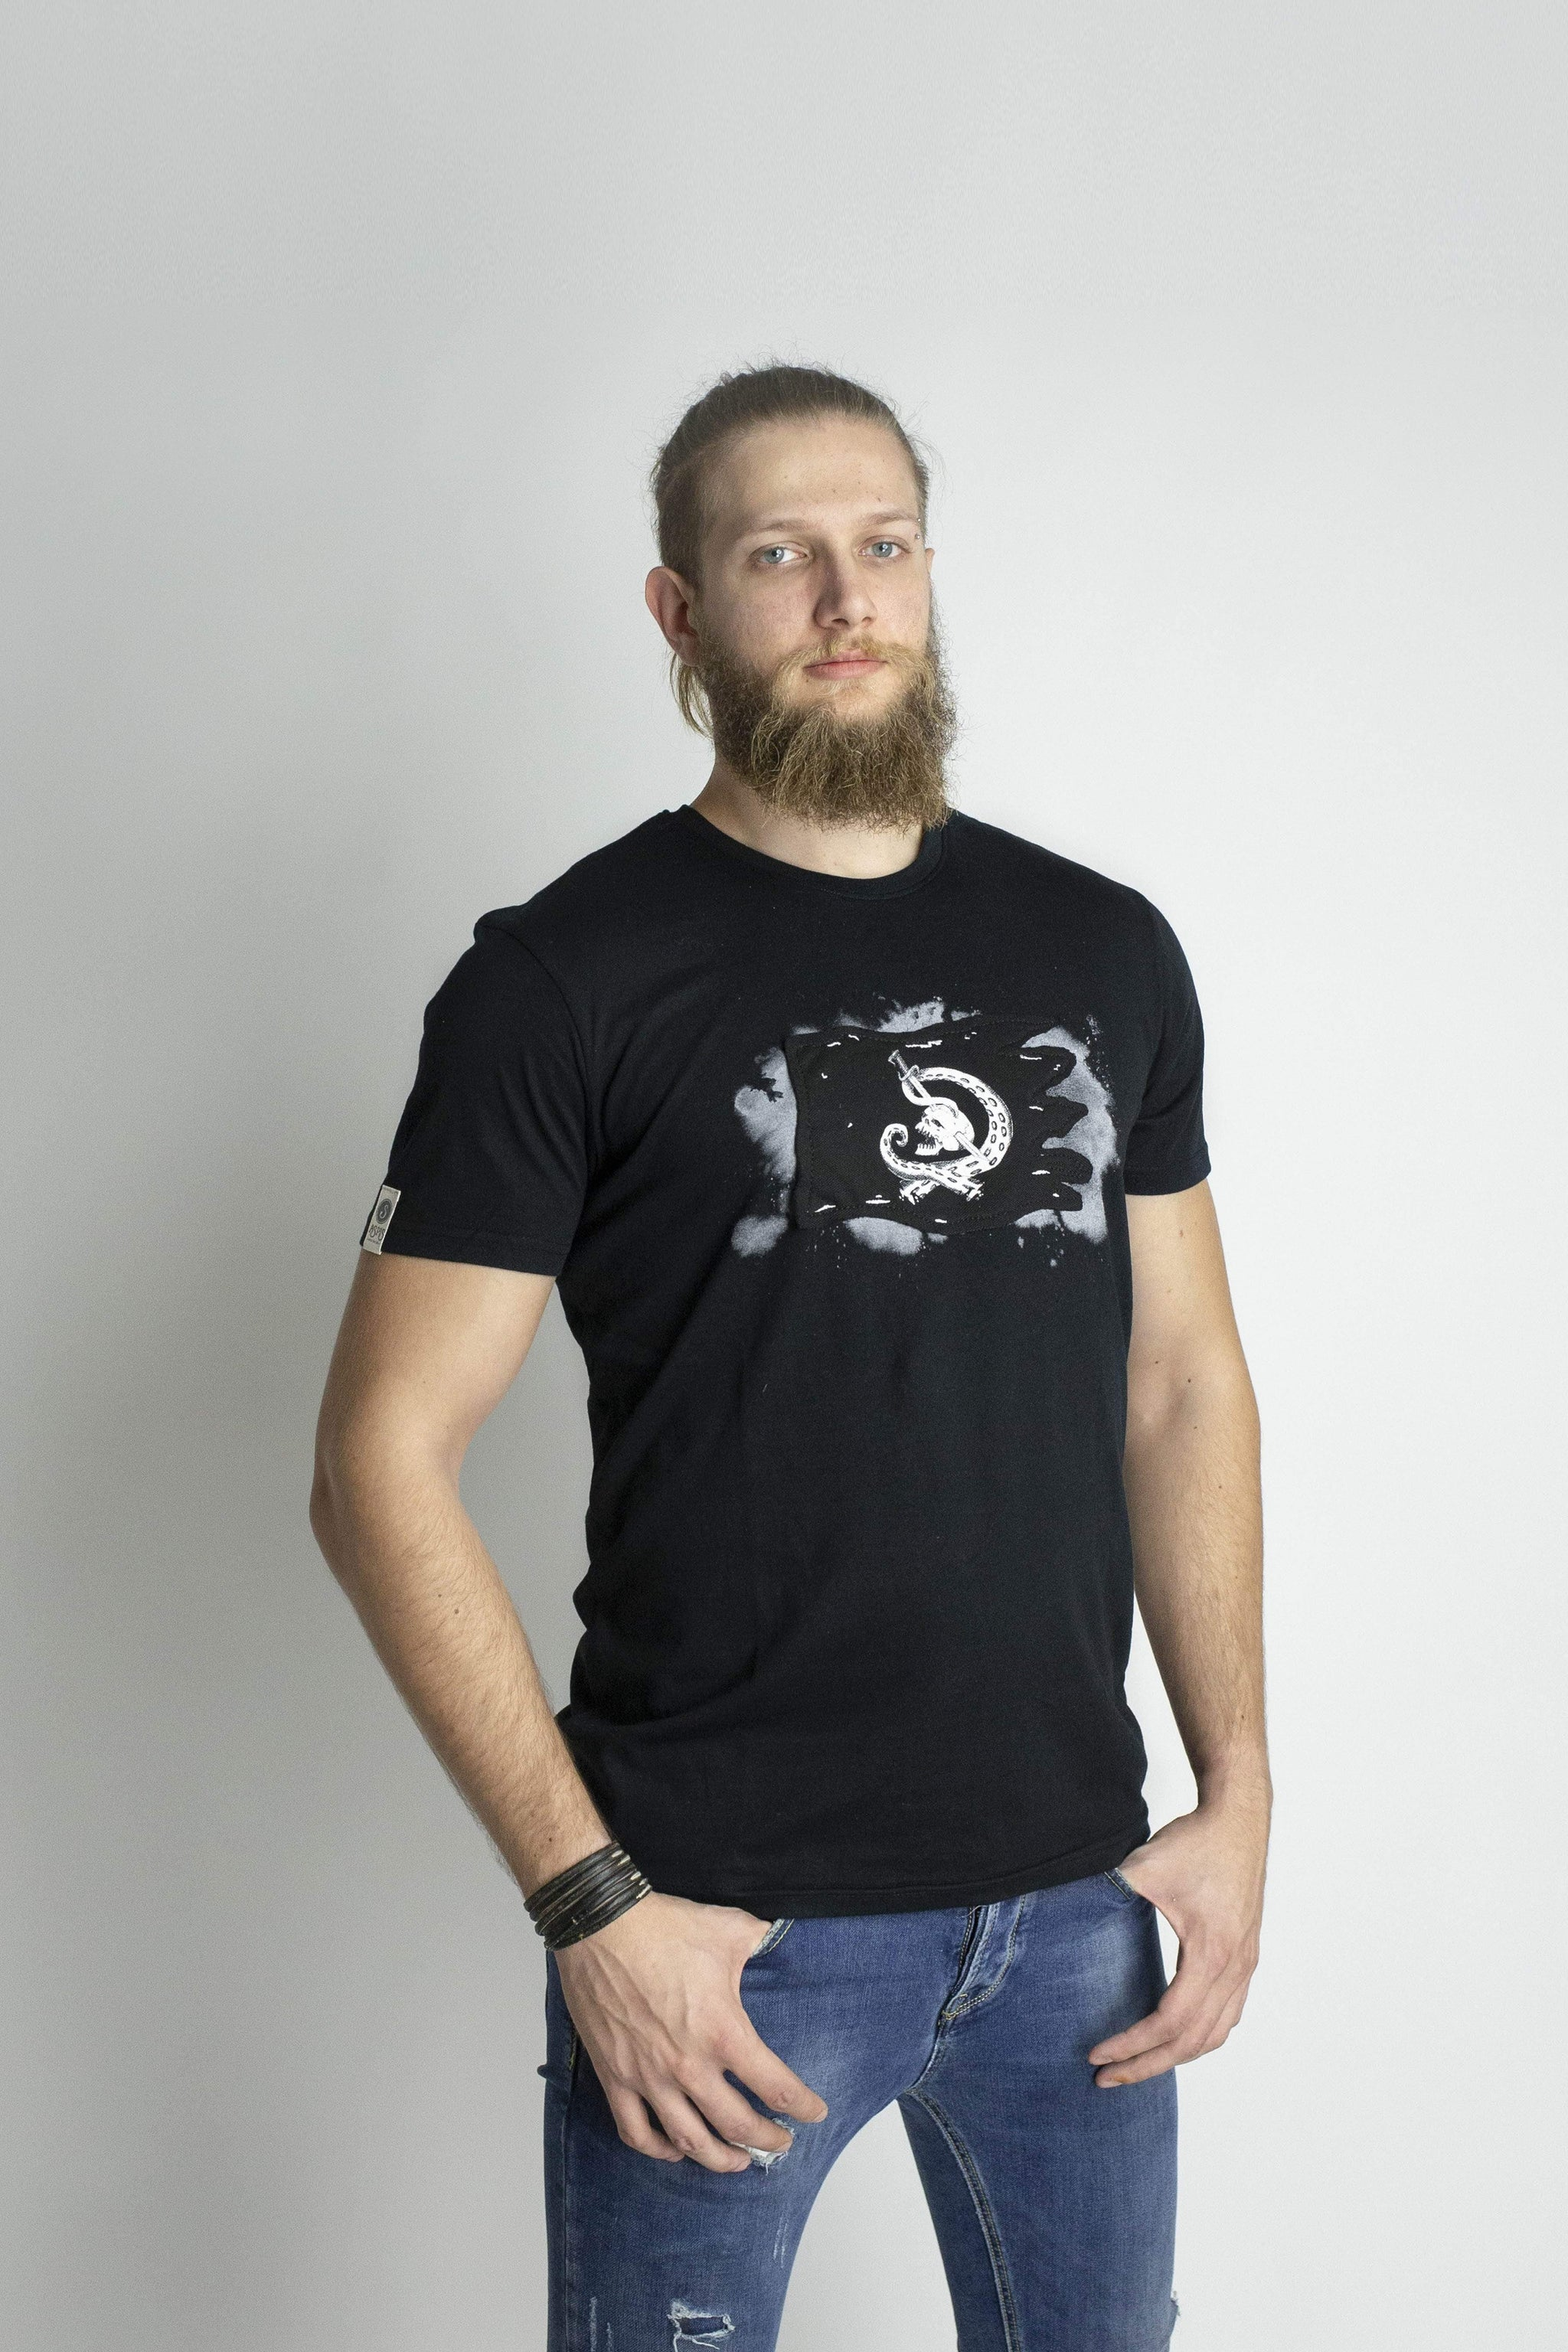 ASPISWEAR Tutti i Prodotti T-shirt KrakenFlag Uomo sustainable fashion ethical fashion